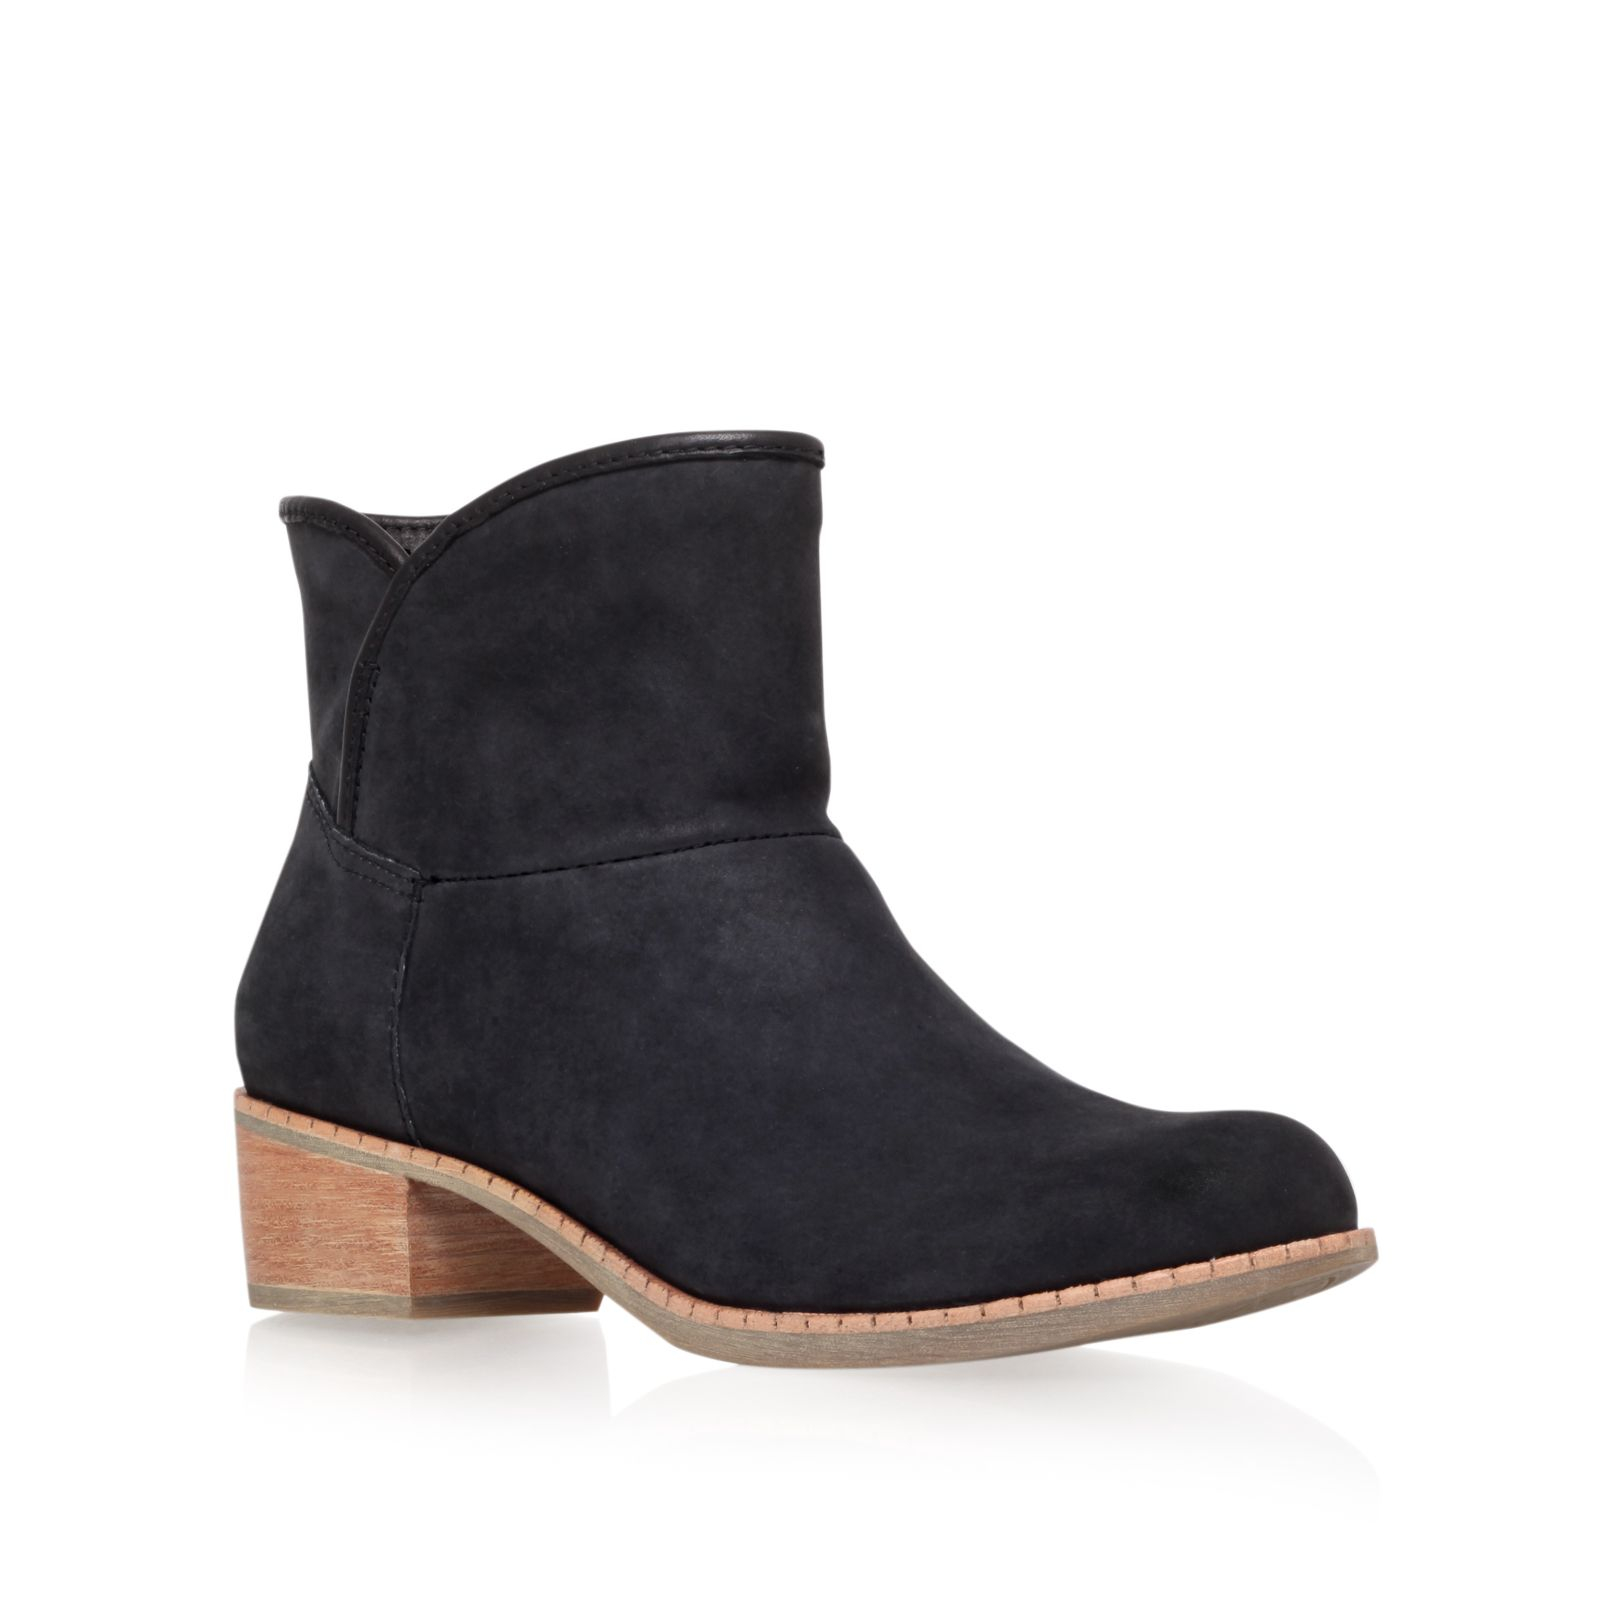 5b6ff50a513 Ugg Darling Suede Ankle Boots - cheap watches mgc-gas.com